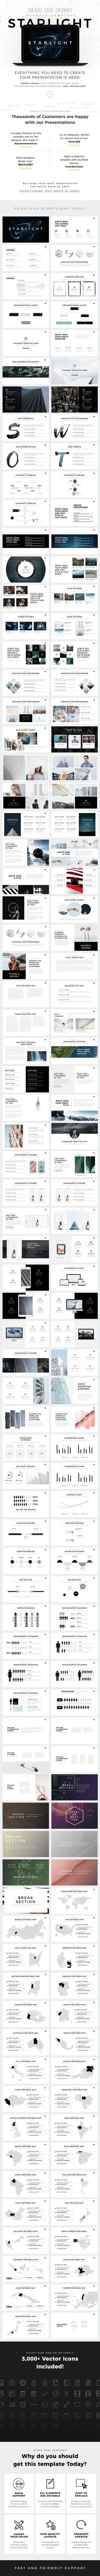 Starlight Minimal Keynote Template Pitch Deck by LouisTwelve-Design Building your presentation from scratch has never been so easy. With Starlight Minimal Keynote Template Pitch Deck now you can c Keynote Presentation, Powerpoint Presentation Templates, Presentation Slides, Keynote Design, E Learning, Professional Powerpoint Templates, Creative Powerpoint, Ecommerce Template, Keynote Template